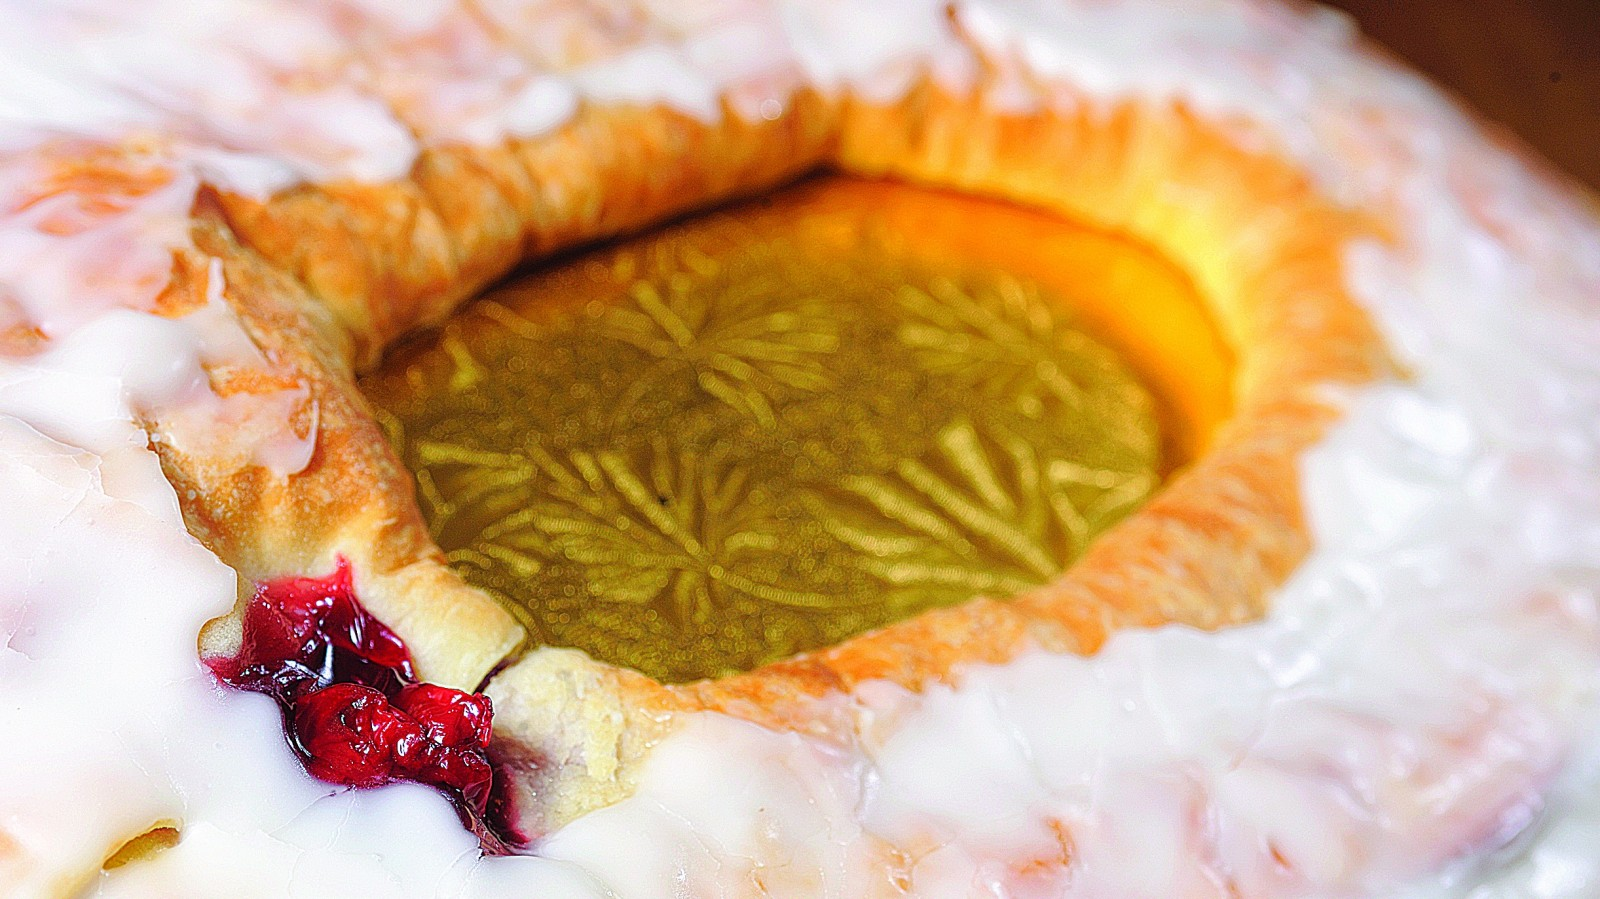 A cherry filled Kringle from Ohlson's Bakery. (Photo by Michael Majewski)